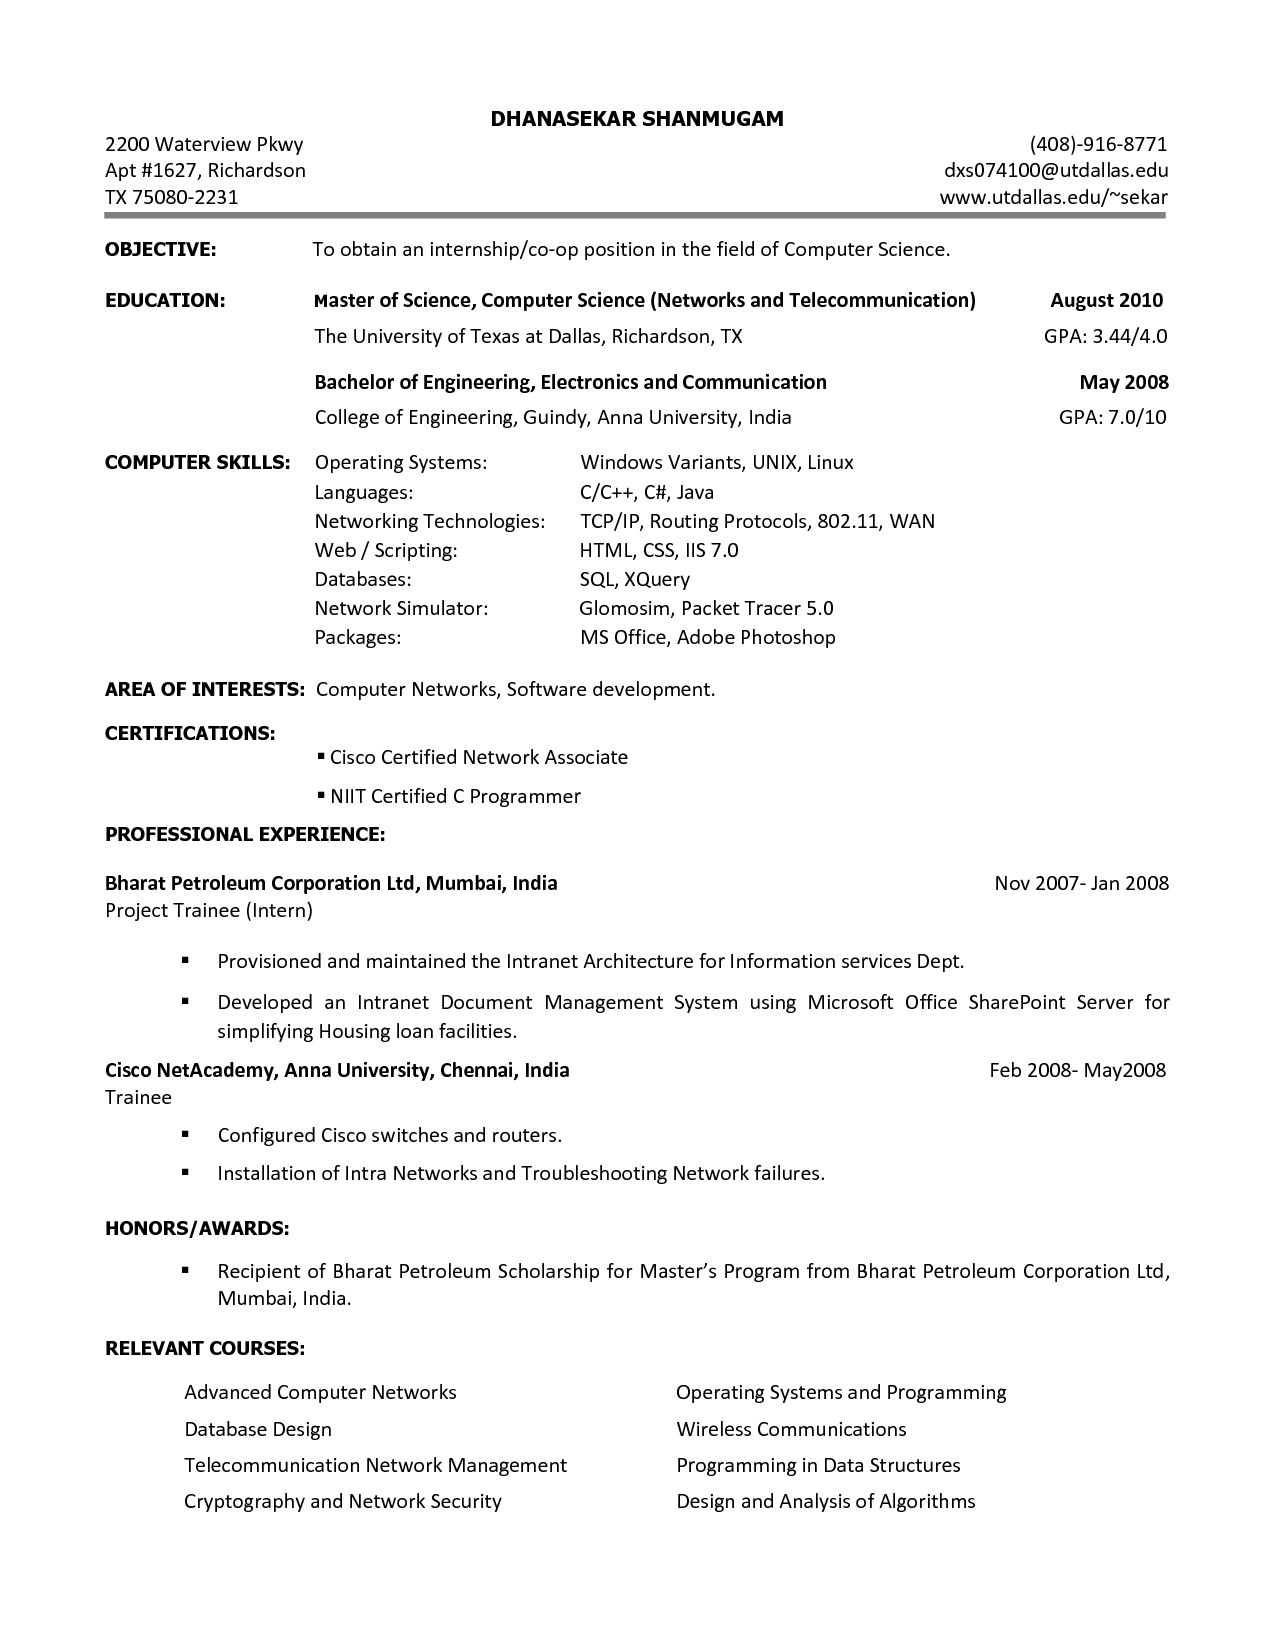 Computer Engineer Resume Pinlirik_Pas On Your Essay  Pinterest  Food Science